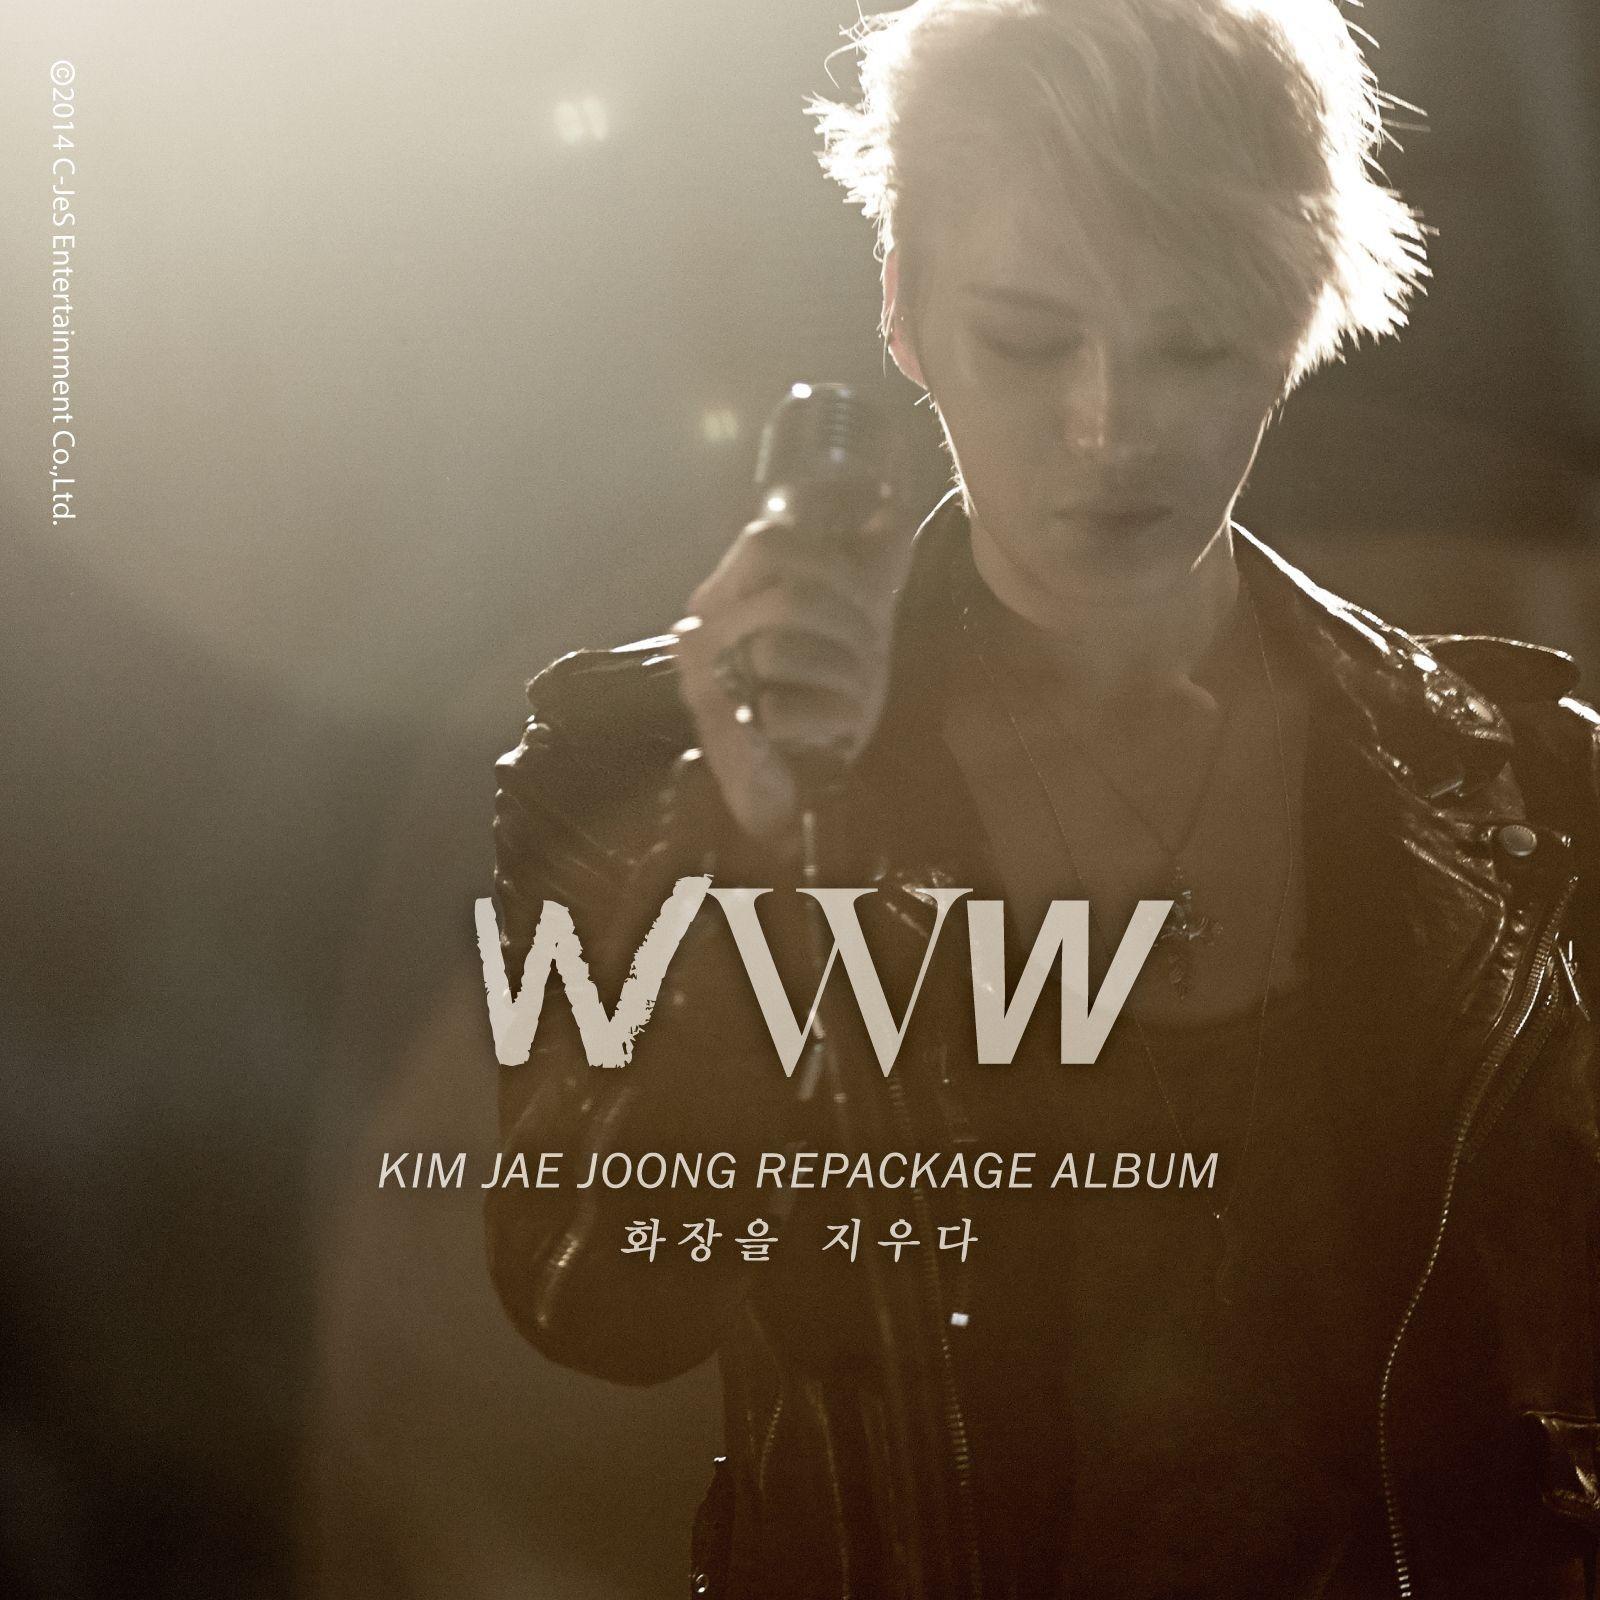 [Album] Kim Jae Joong - WWW Removing My Make-Up [Repackage]